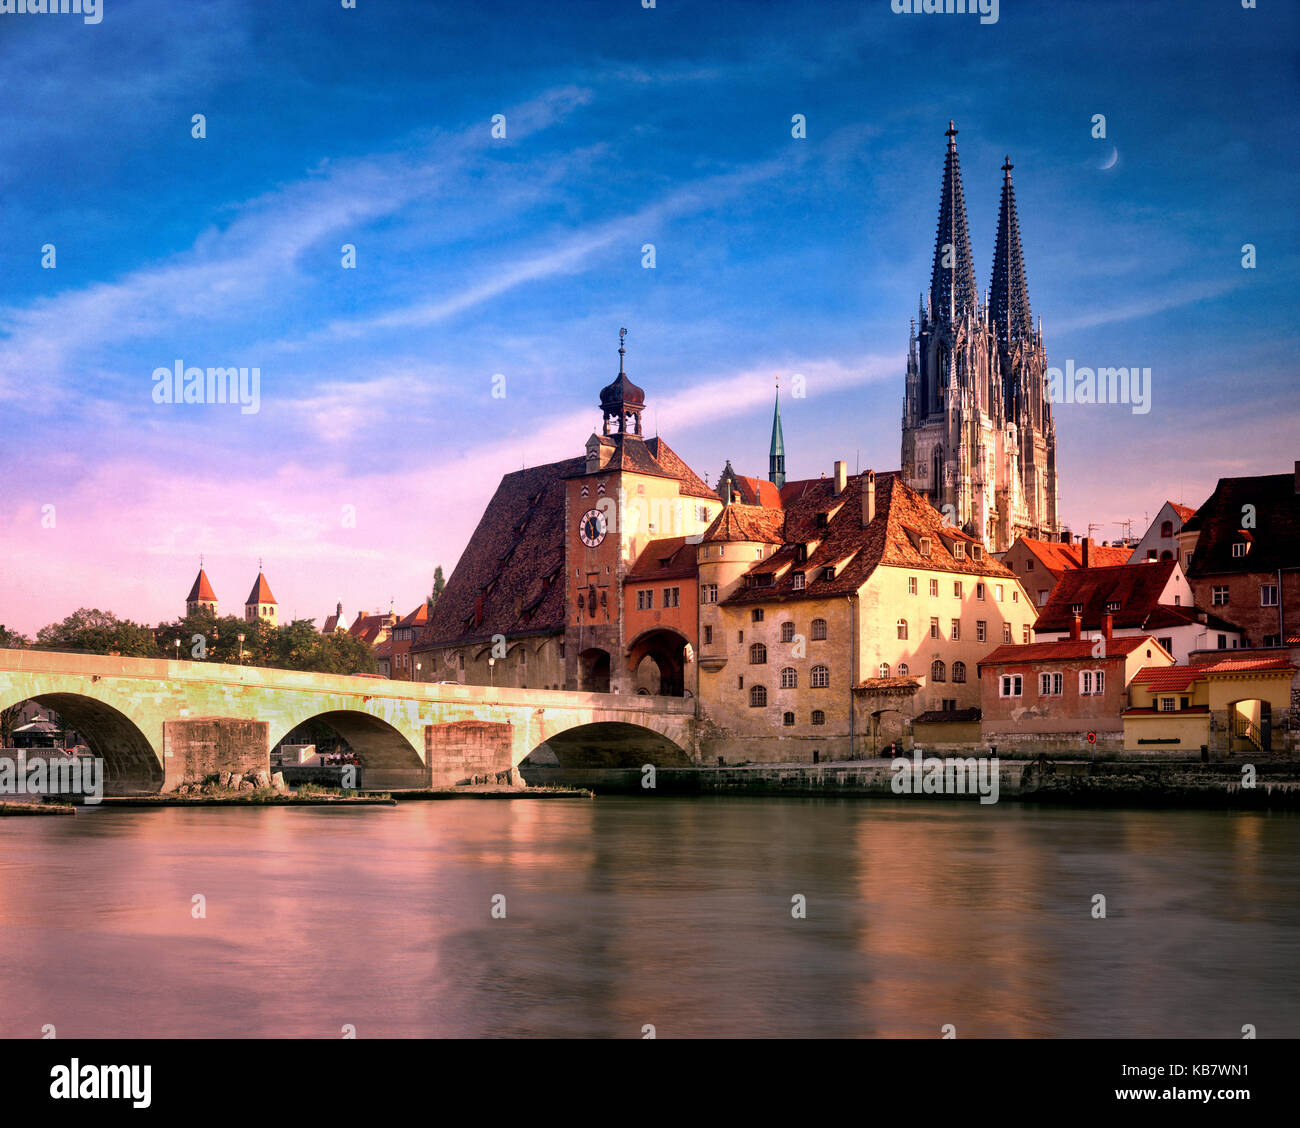 DE - BAVARIA: Cathedral of St. Peter and Steinerne Bruecke over River Danube at Regensburg - Stock Image